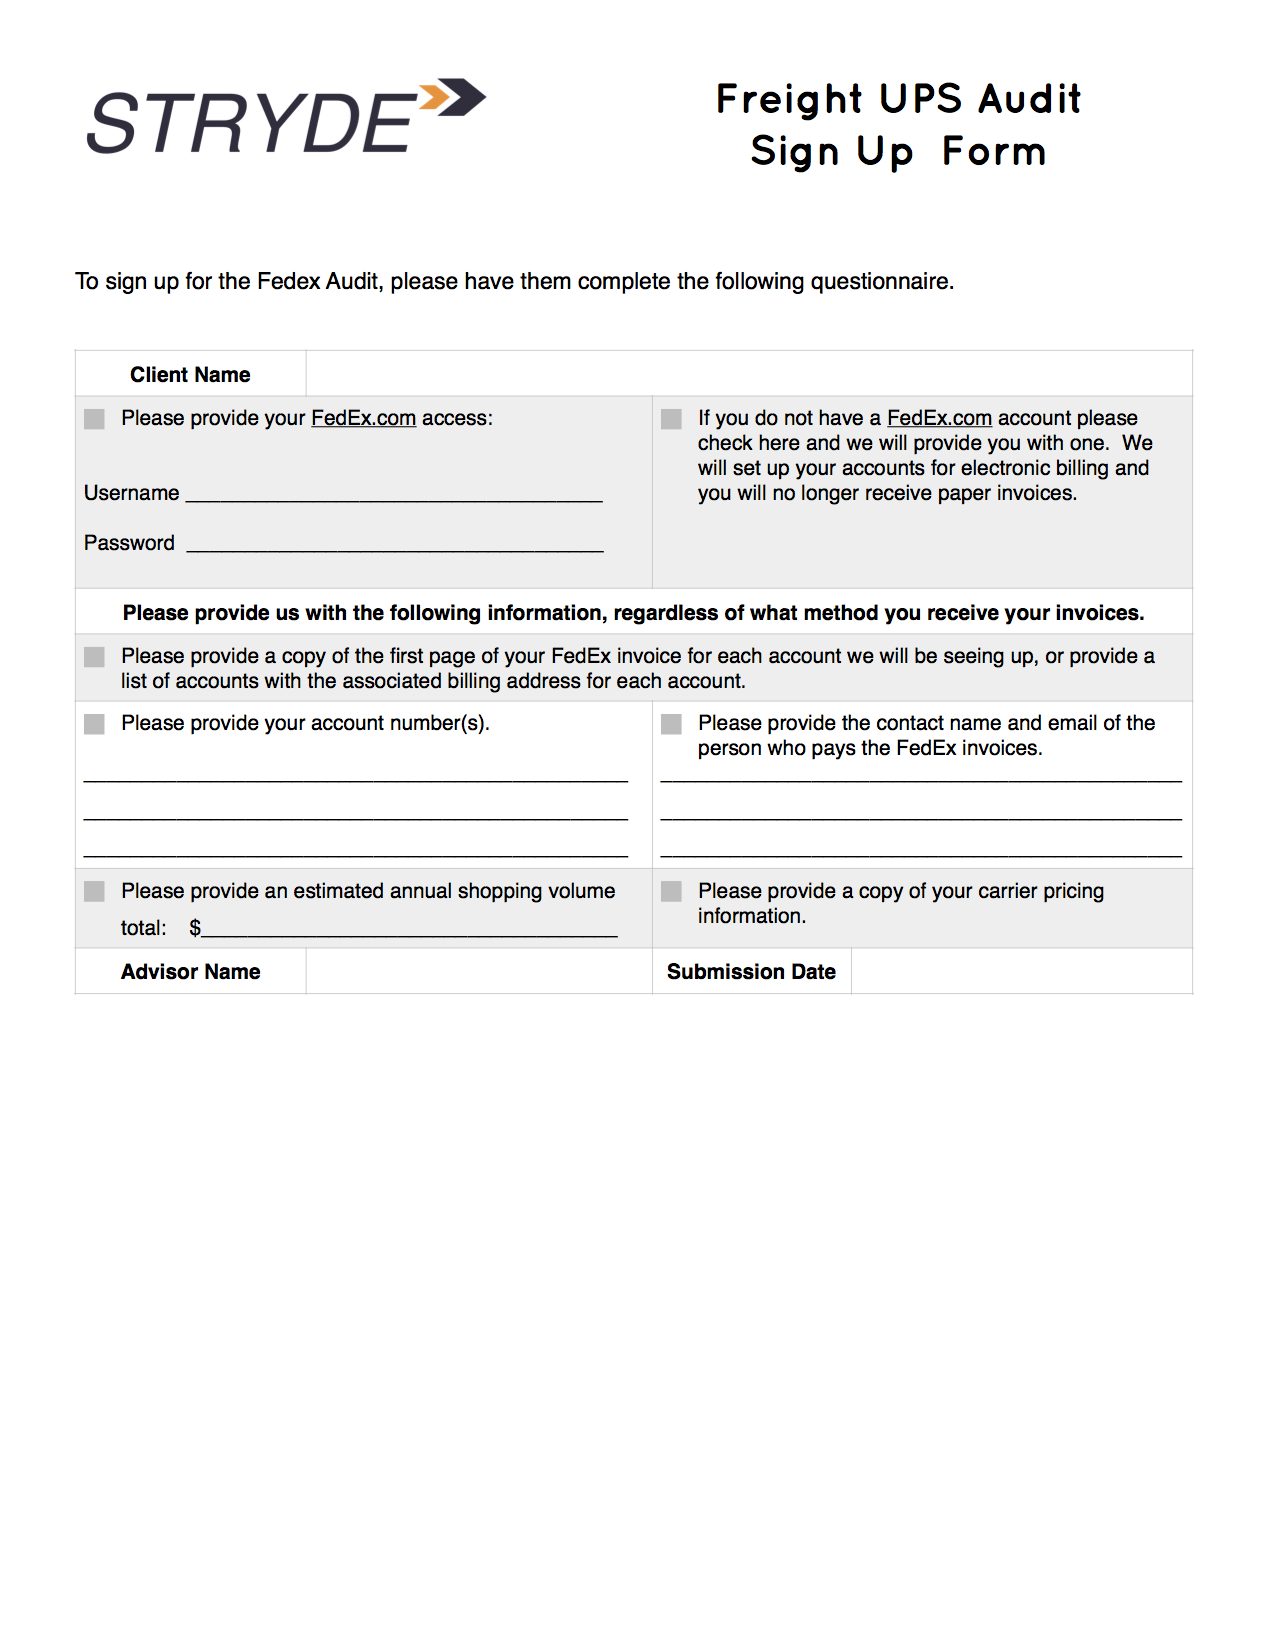 Stryde Freight FedEx Audit Questionaire.png